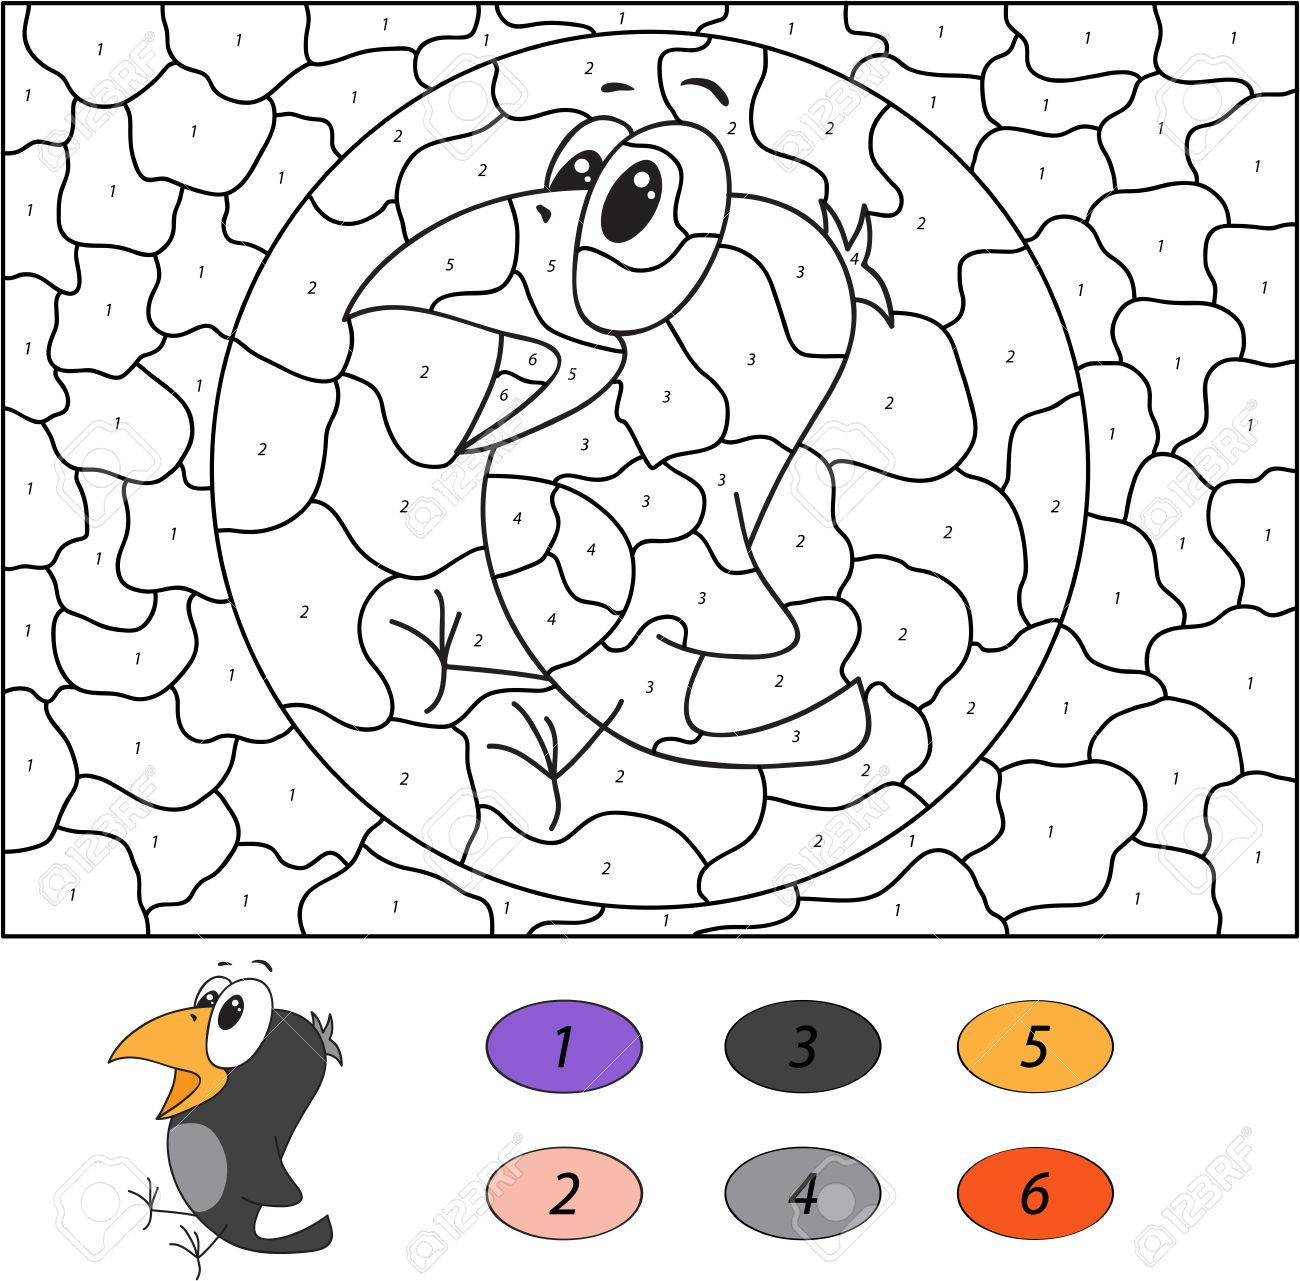 color by number educational game for kids funny cartoon crow